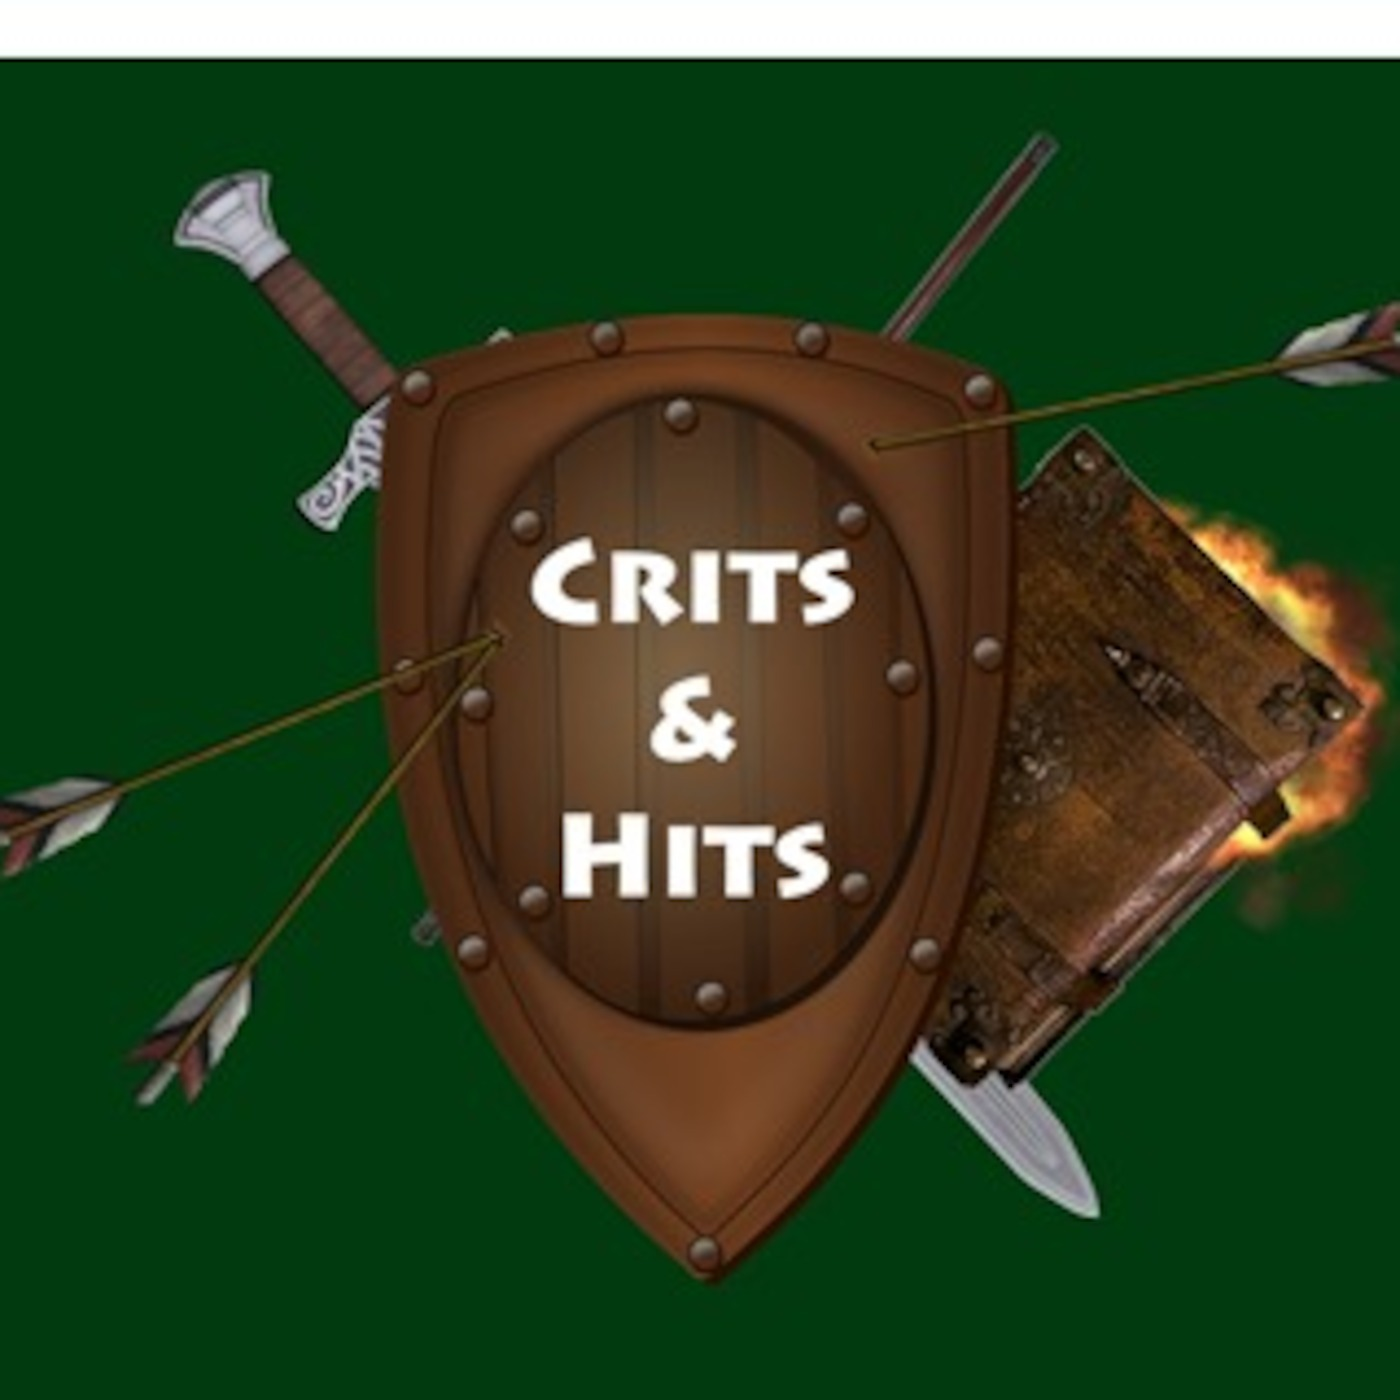 f27b92cda Welcome back to Crits   Hits! This week the party makes their way to a cave  that seems to be guarded by Goblins